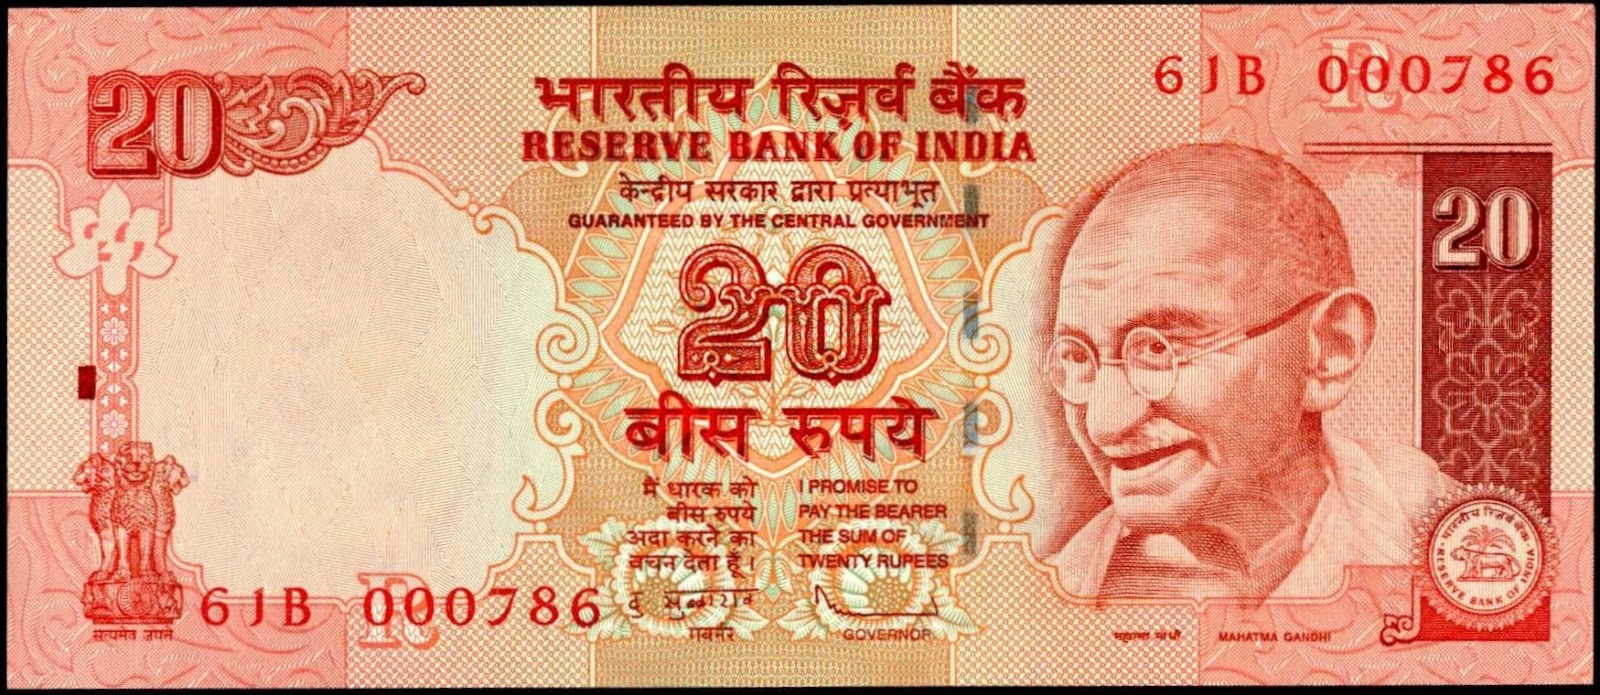 RBI to issue new 20 Rupee notes! Old notes to go invalid?